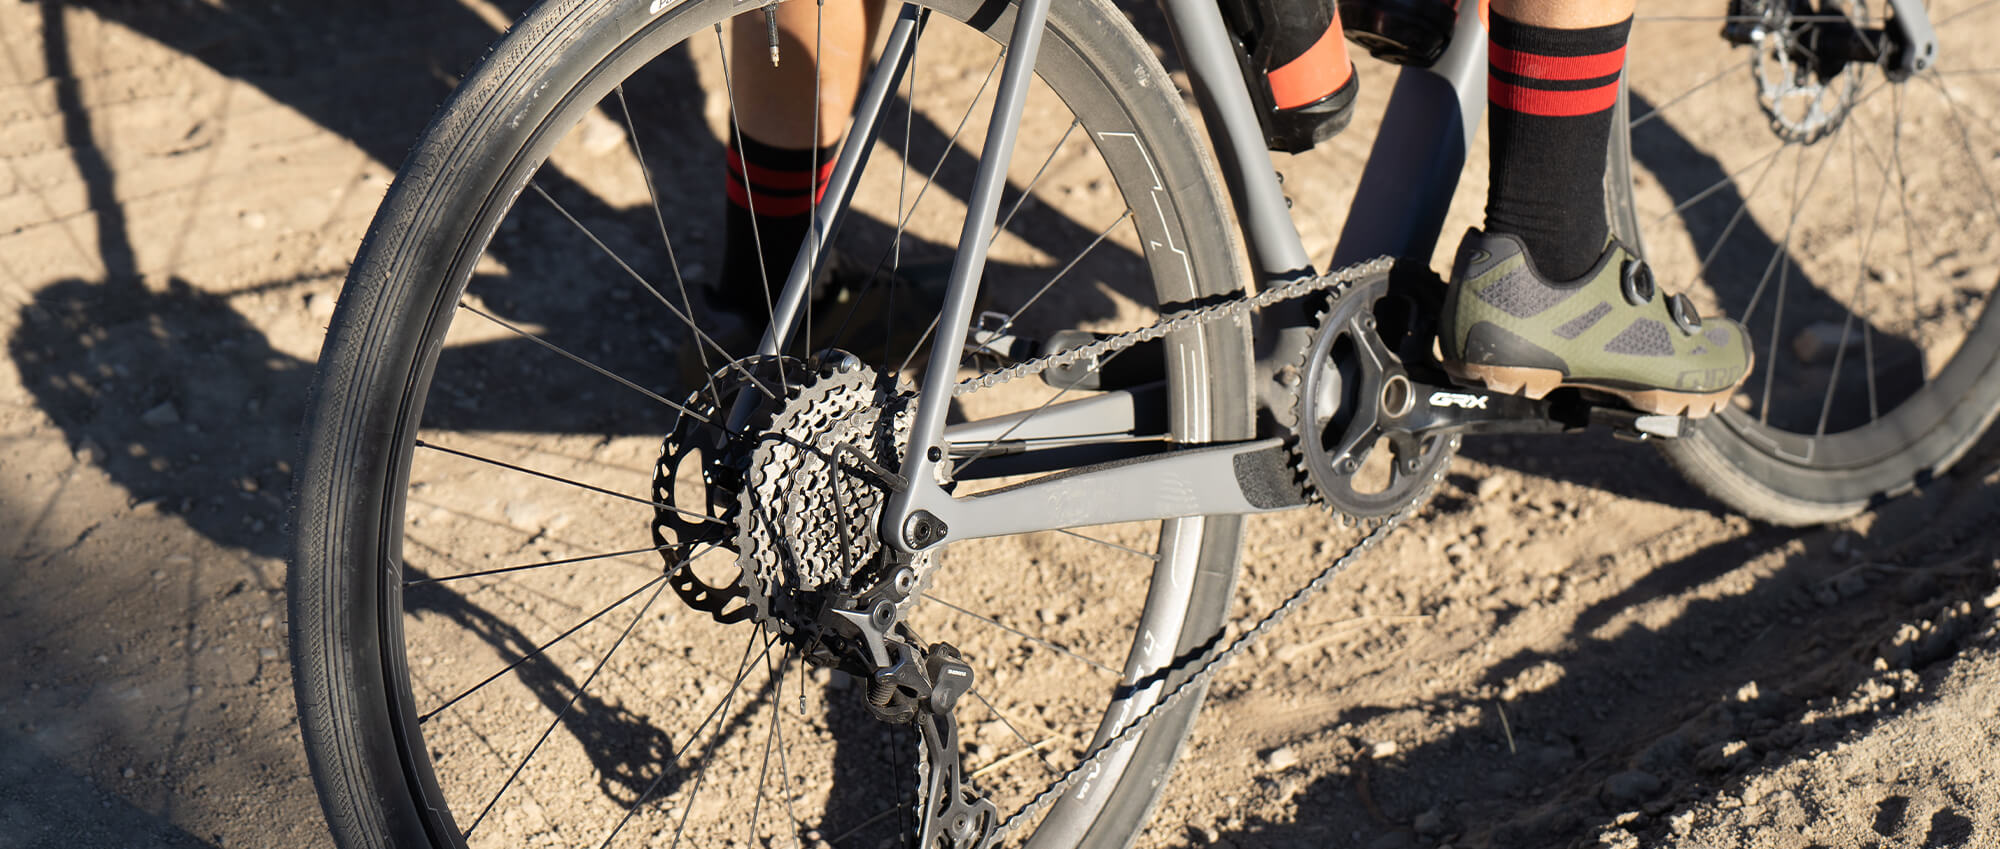 Obed Boundary with 1X Drivetrain